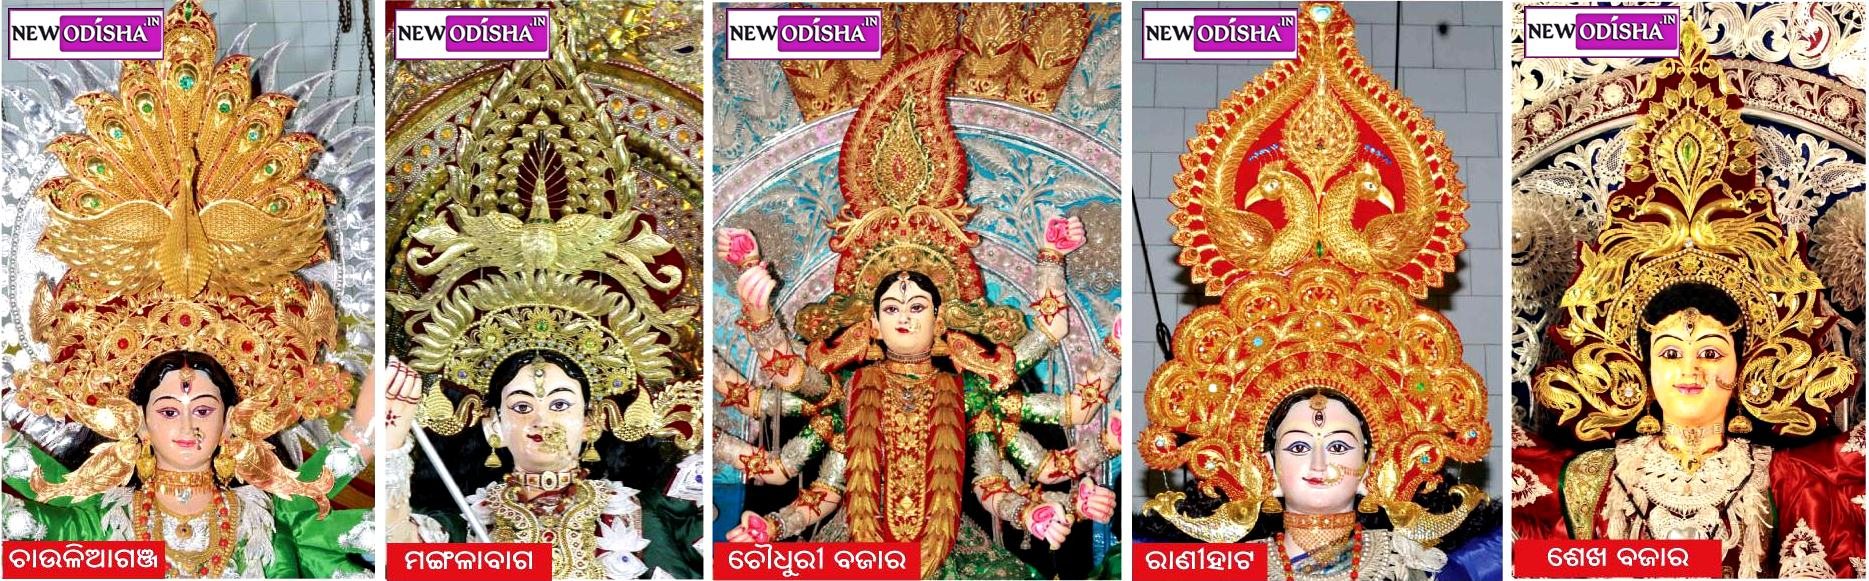 Cuttack Durga Puja Photo Gallery 2015